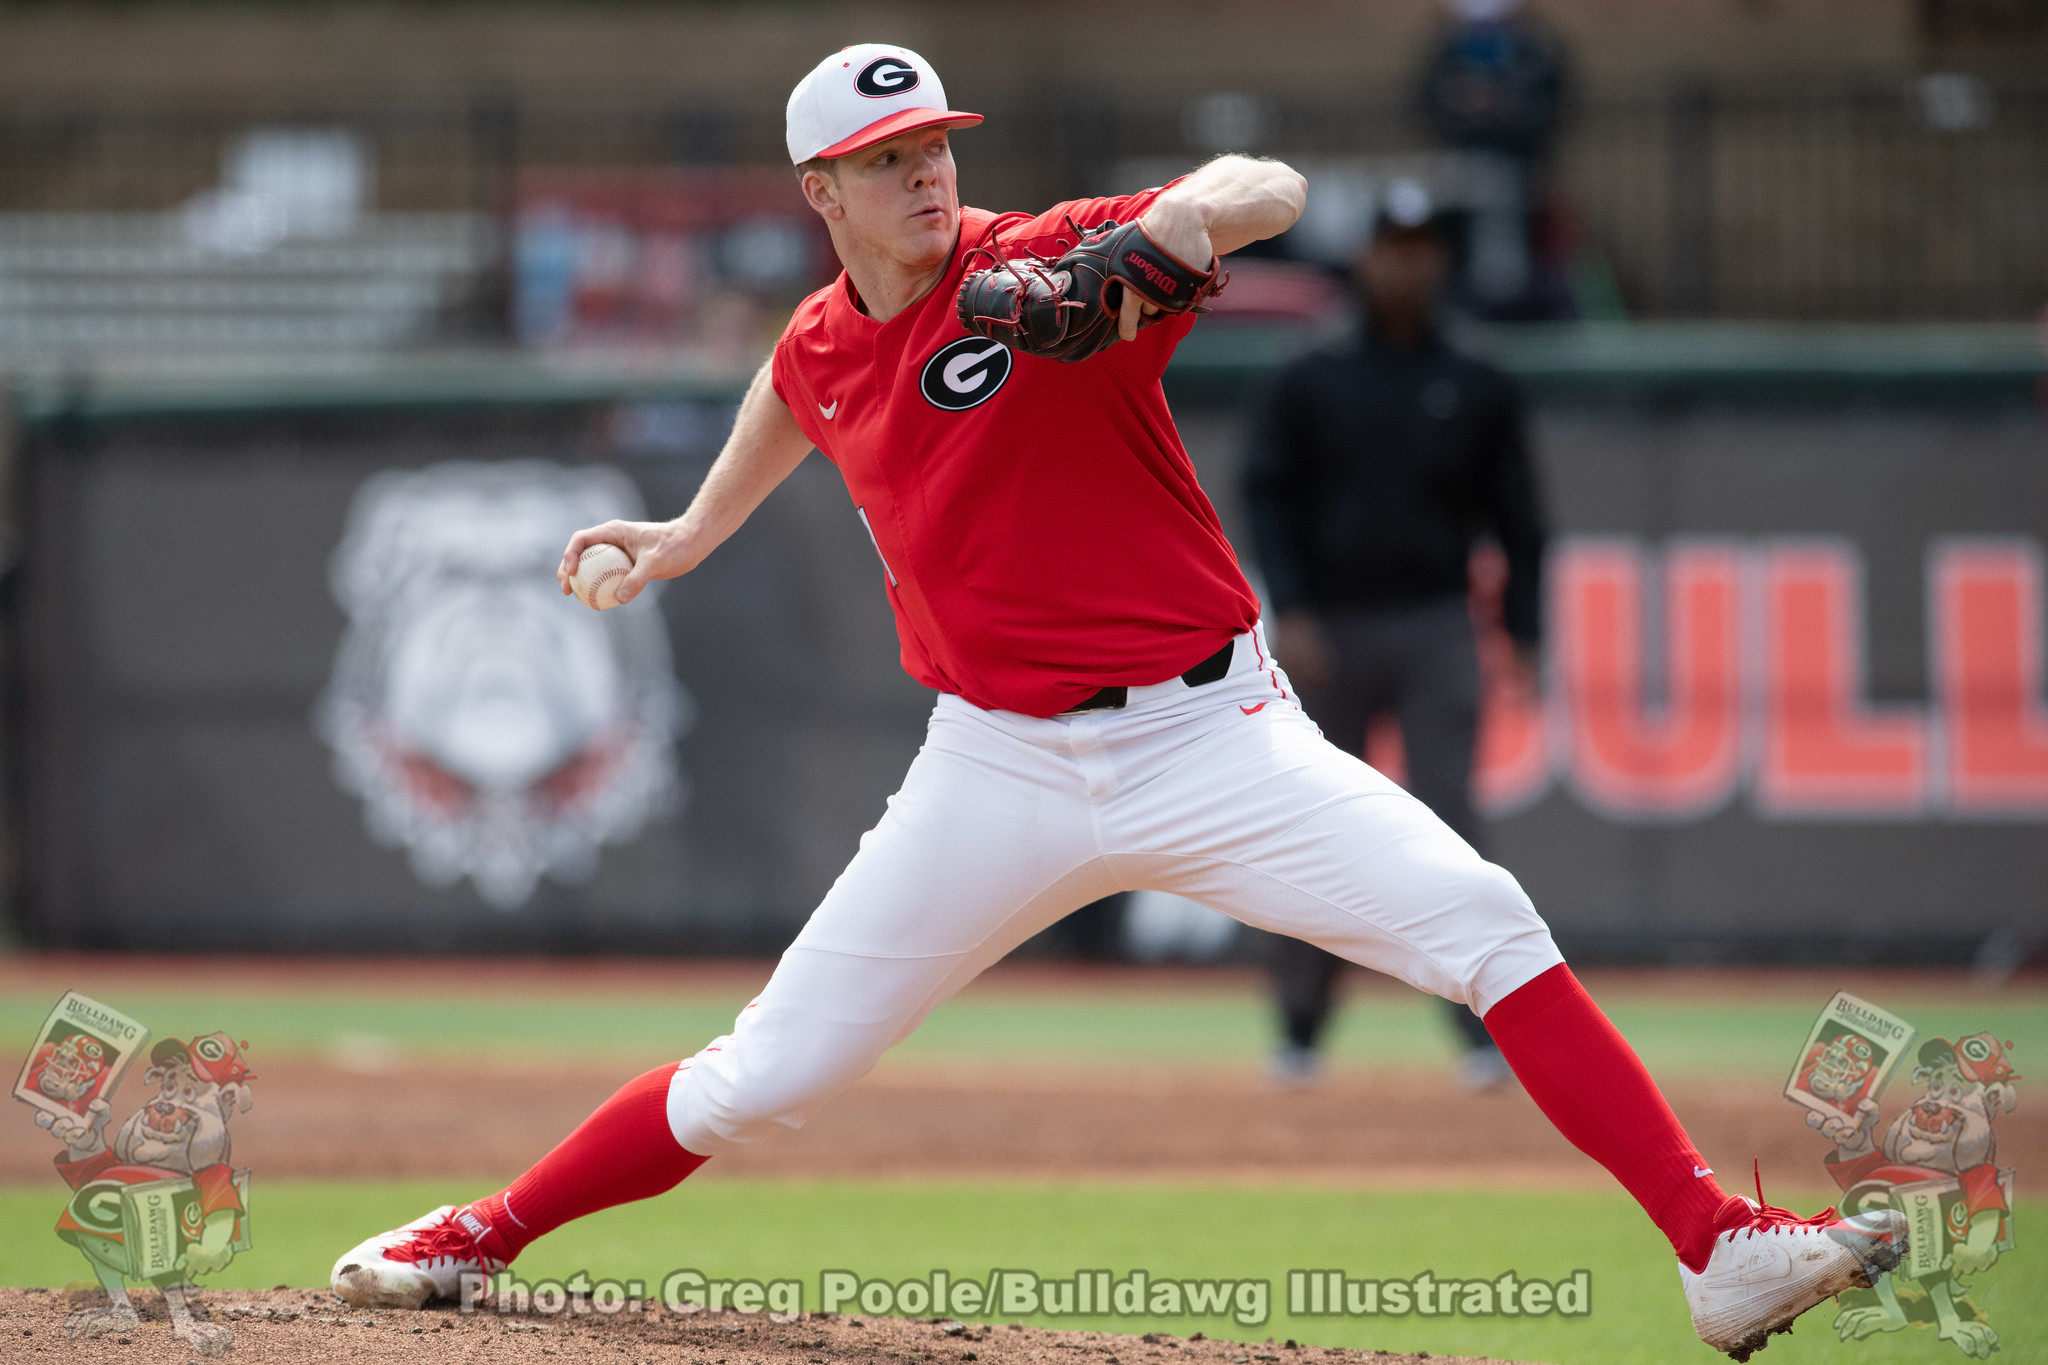 UGA baseball RHP Logan Moody | Georgia vs. UMASS - Game Three | Foley Field, Athens, GA | Sunday, March 8, 2020